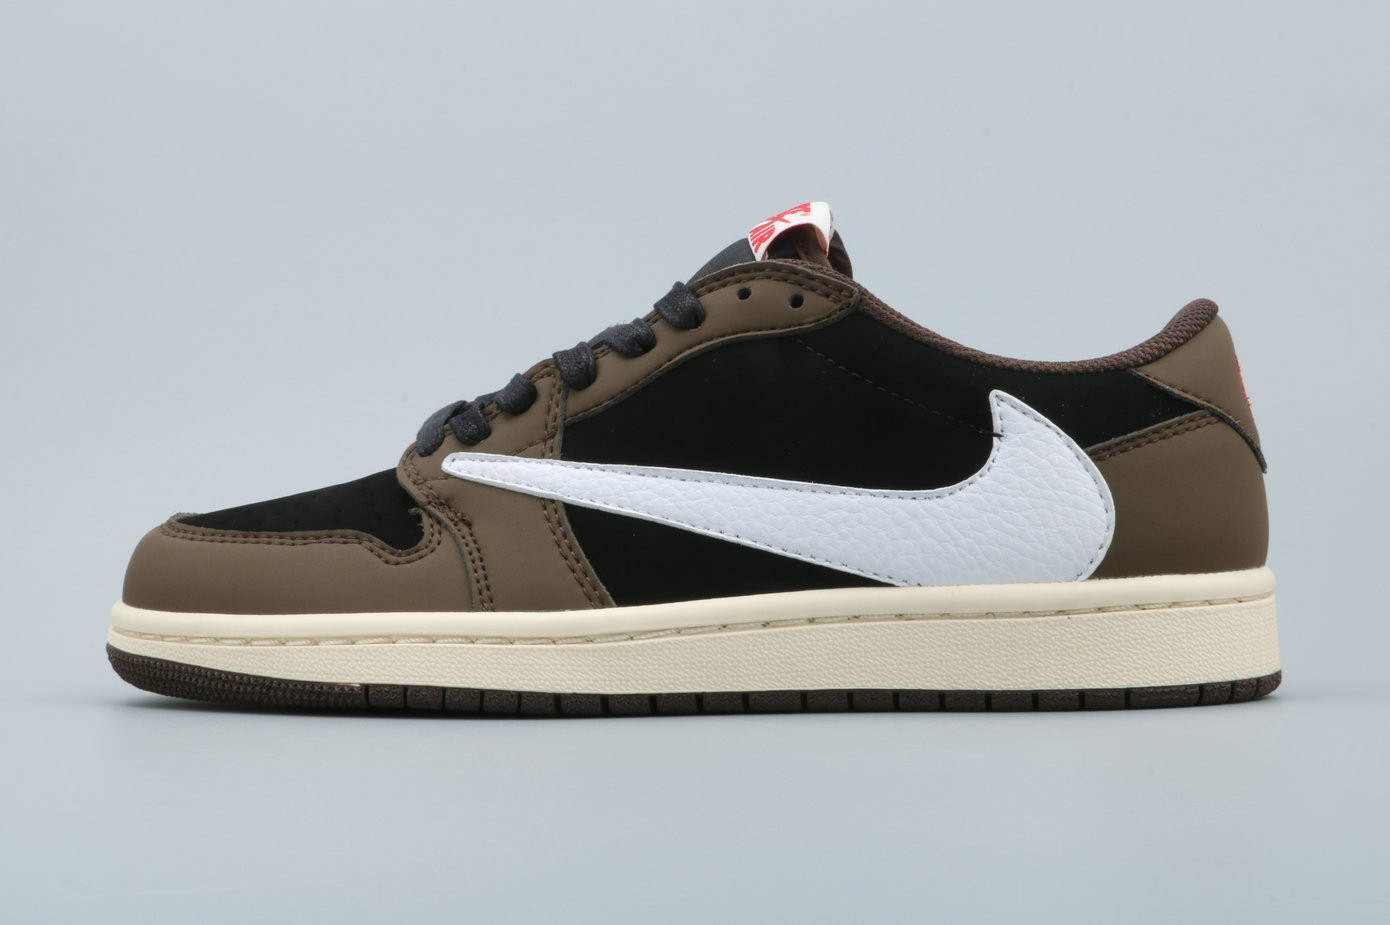 Where To Buy Womens Travis Scott x Air Jordan 1 Low OG SP Black Dark Mocha-University Red-Sail CQ4277-001